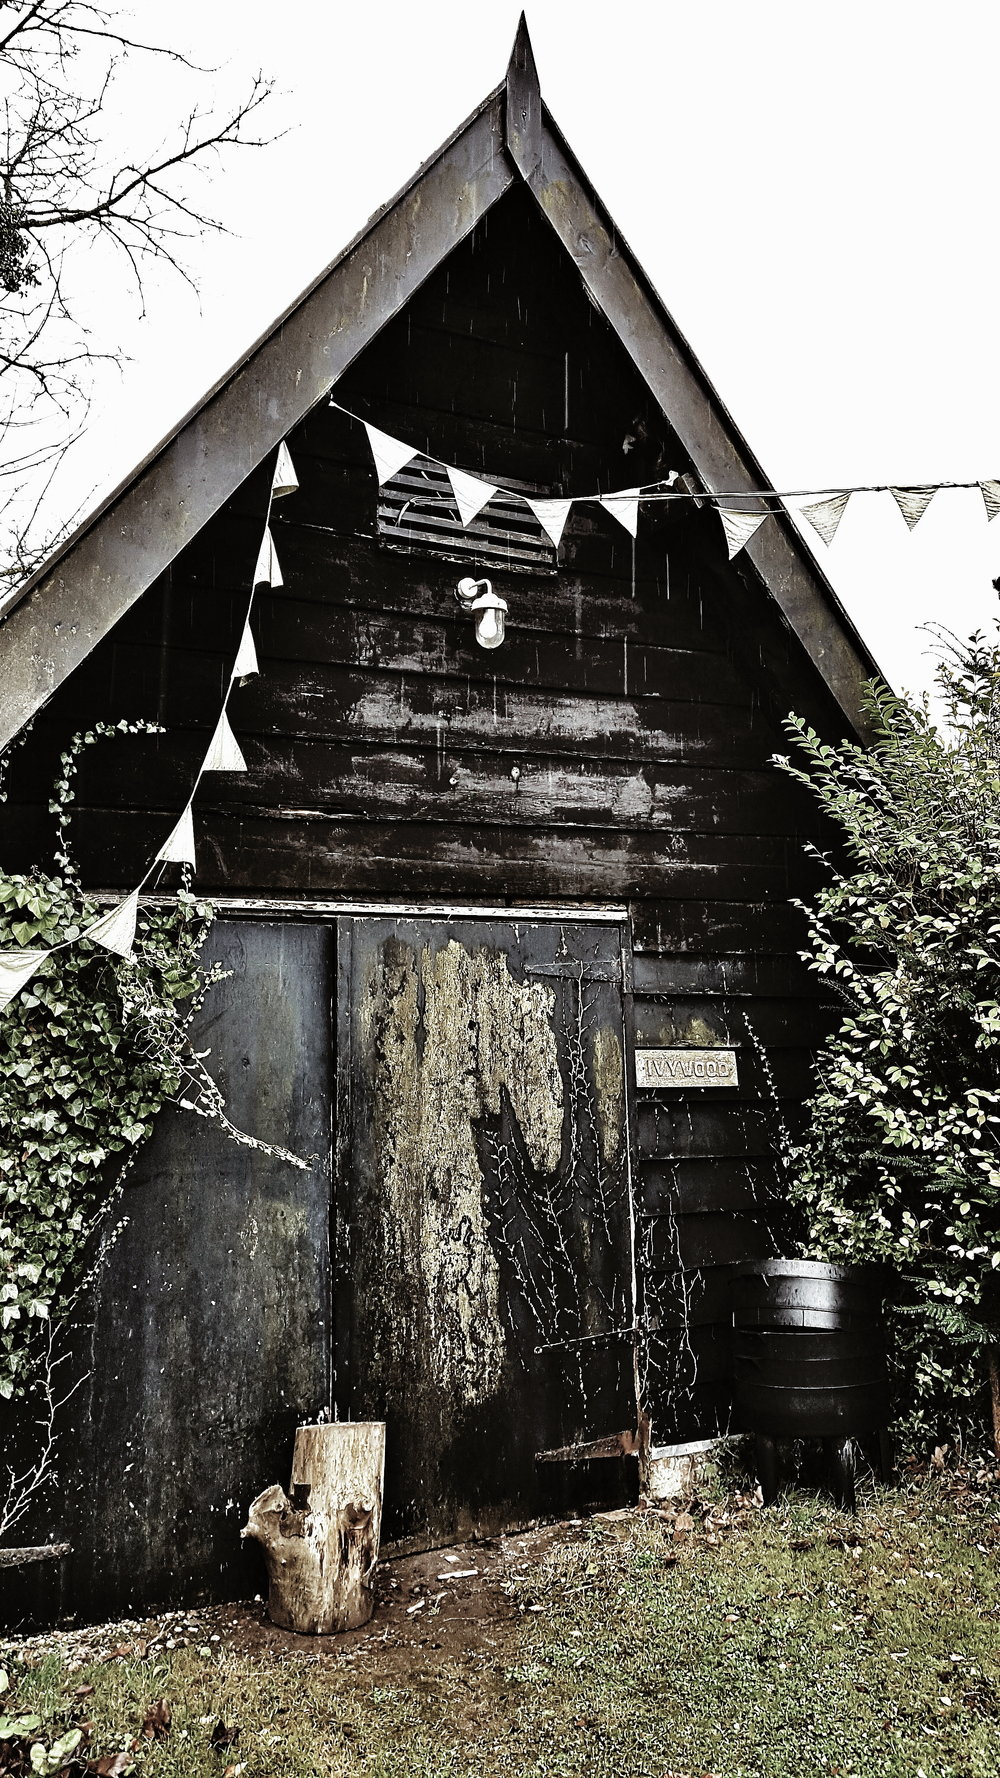 Where most people see an old shed I see my dream modern rustic cabin with black cladding. I would love to add a garden studio at home a little bit like this. I loved the bunting strung from it